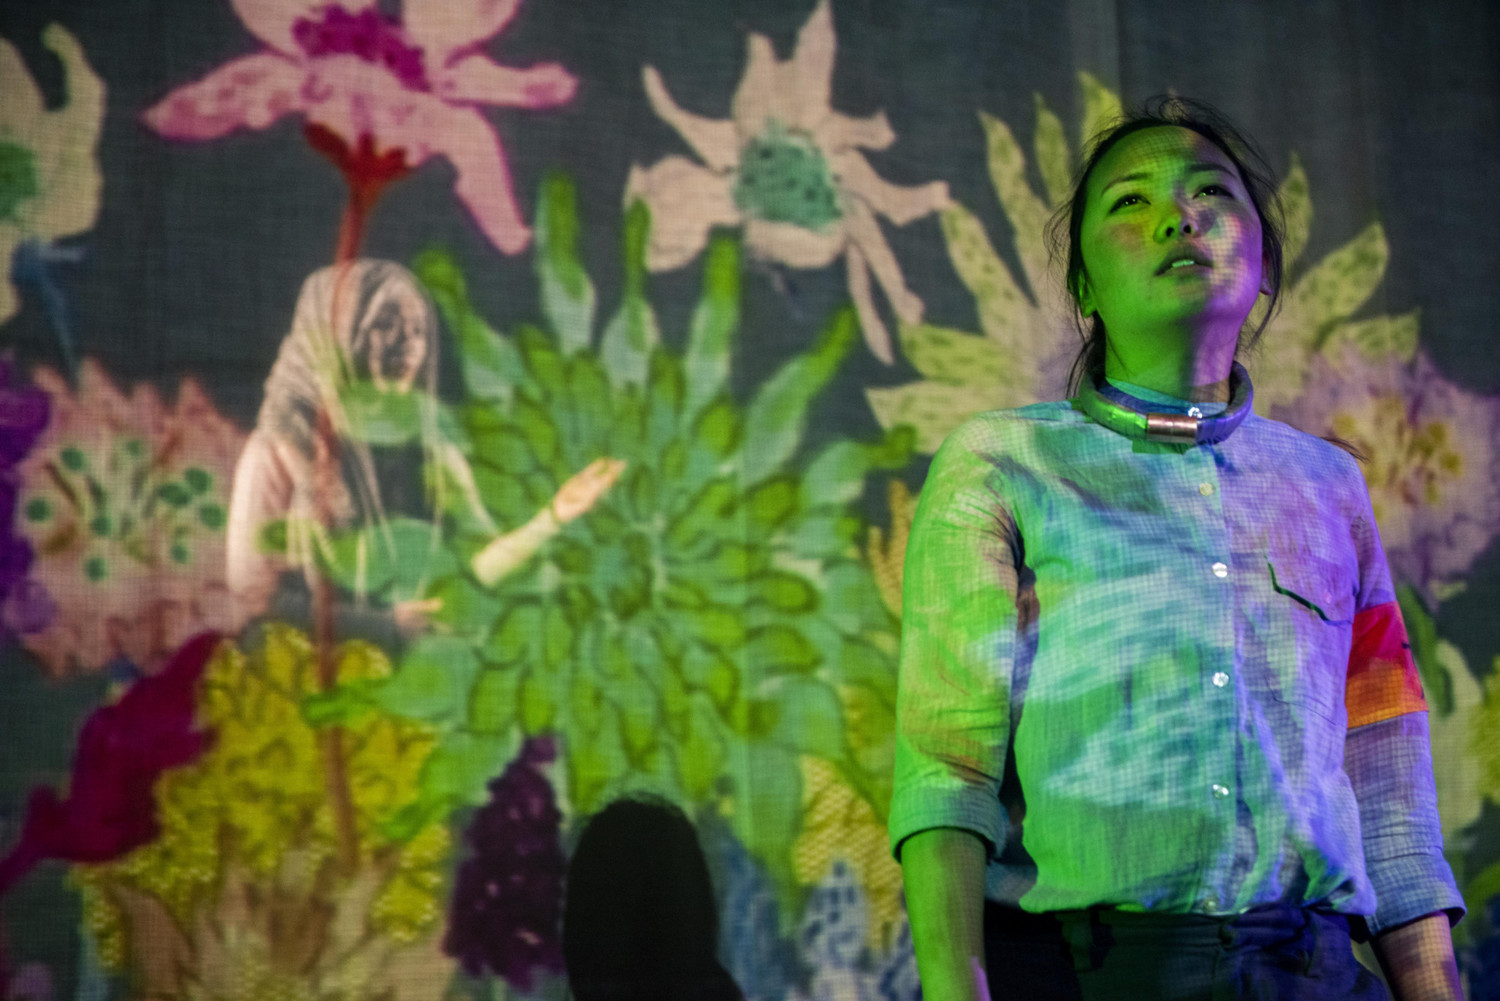 BWW Review: YELLOW RABBIT Places Fear and Human Instinct in the Spotlight